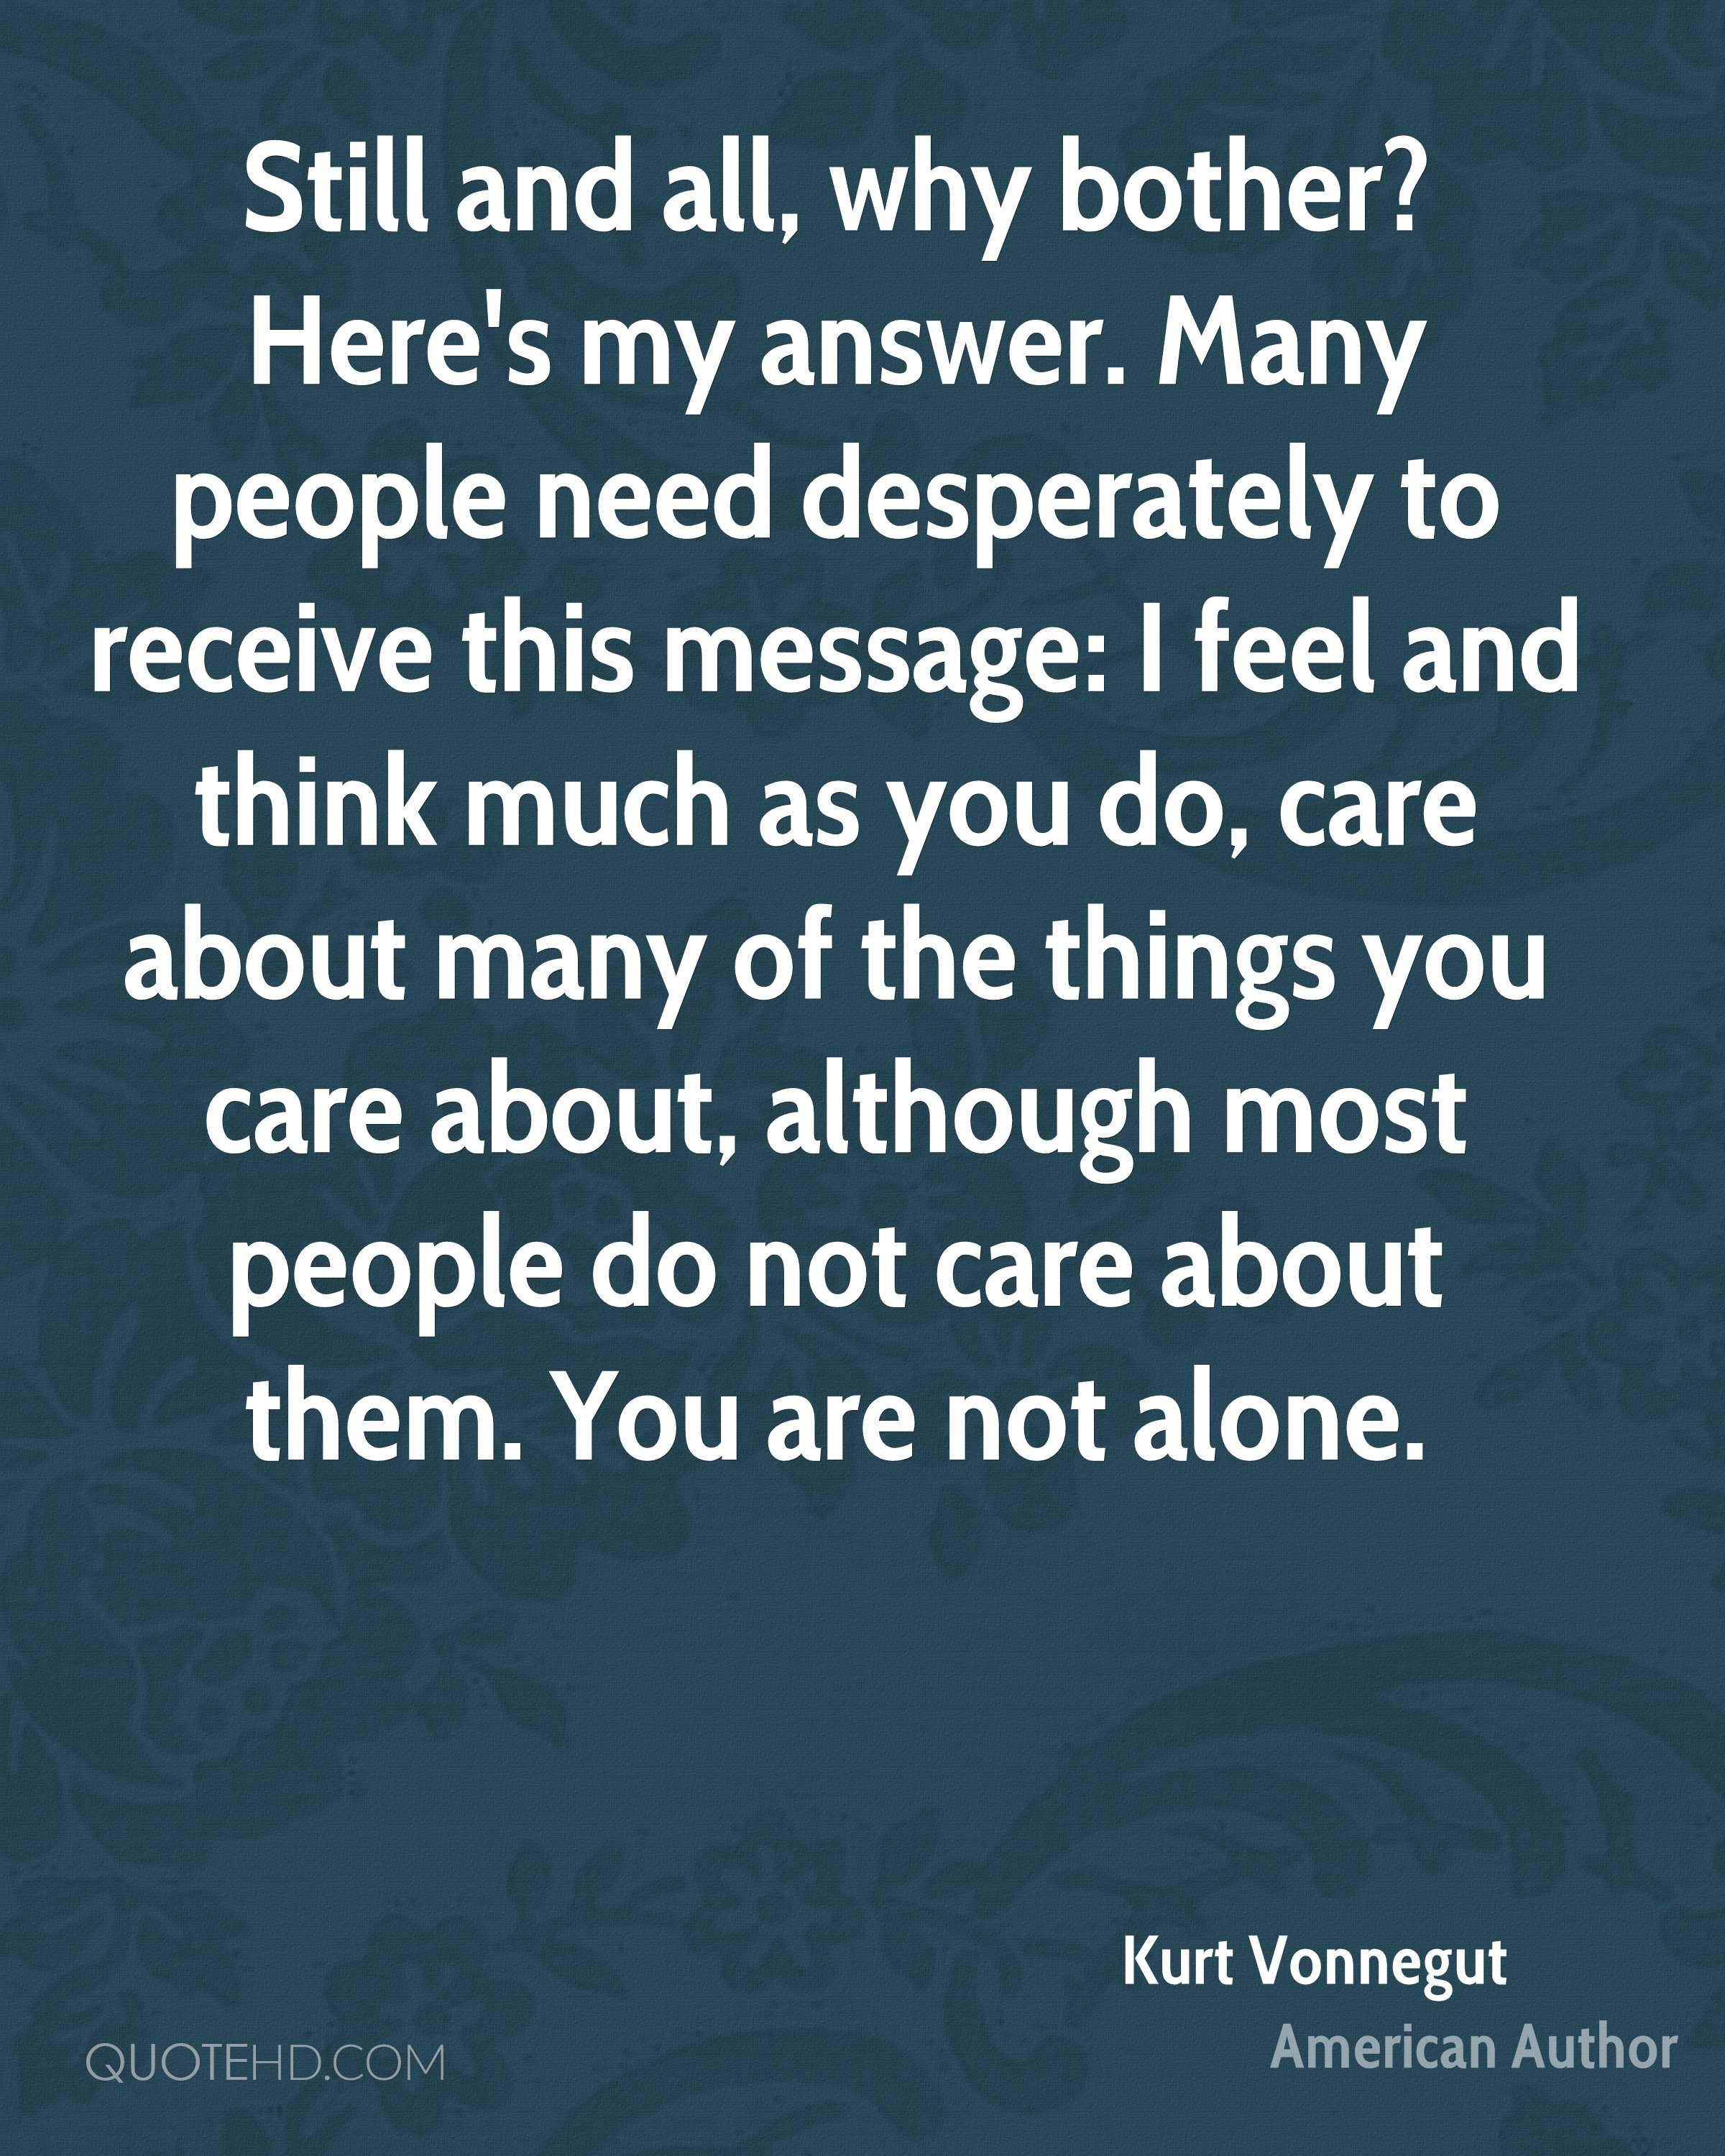 Still and all, why bother? Here's my answer. Many people need desperately to receive this message: I feel and think much as you do, care about many of the things you care about, although most people do not care about them. You are not alone.